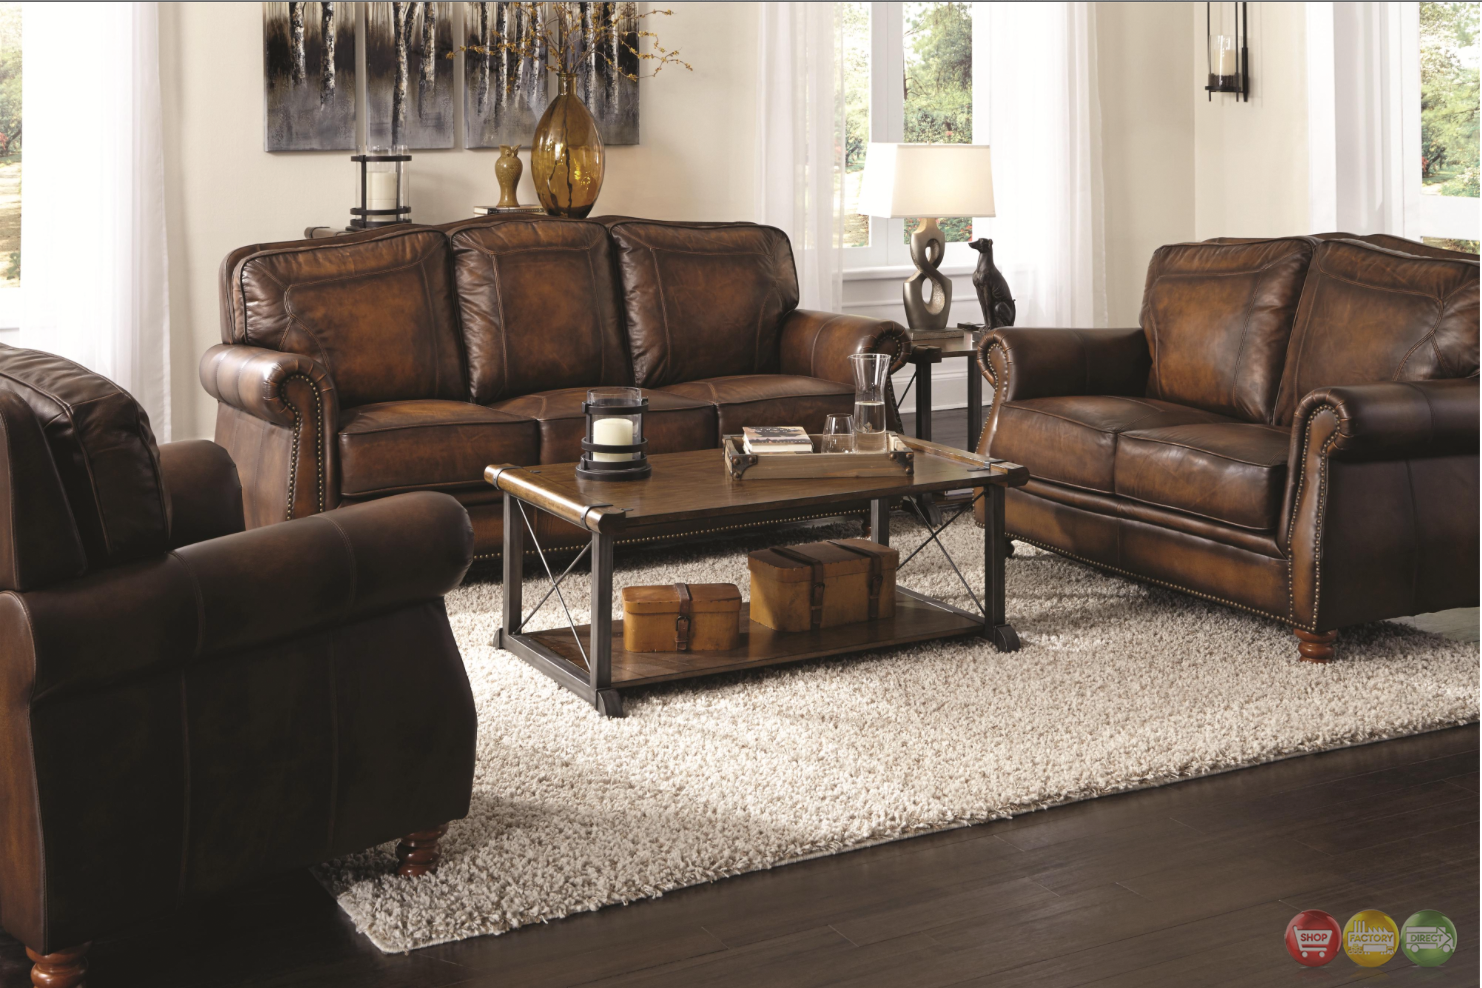 Attirant Cool Genuine Leather Sofas , Good Genuine Leather Sofas 57 About Remodel  Sofa Design Ideas With